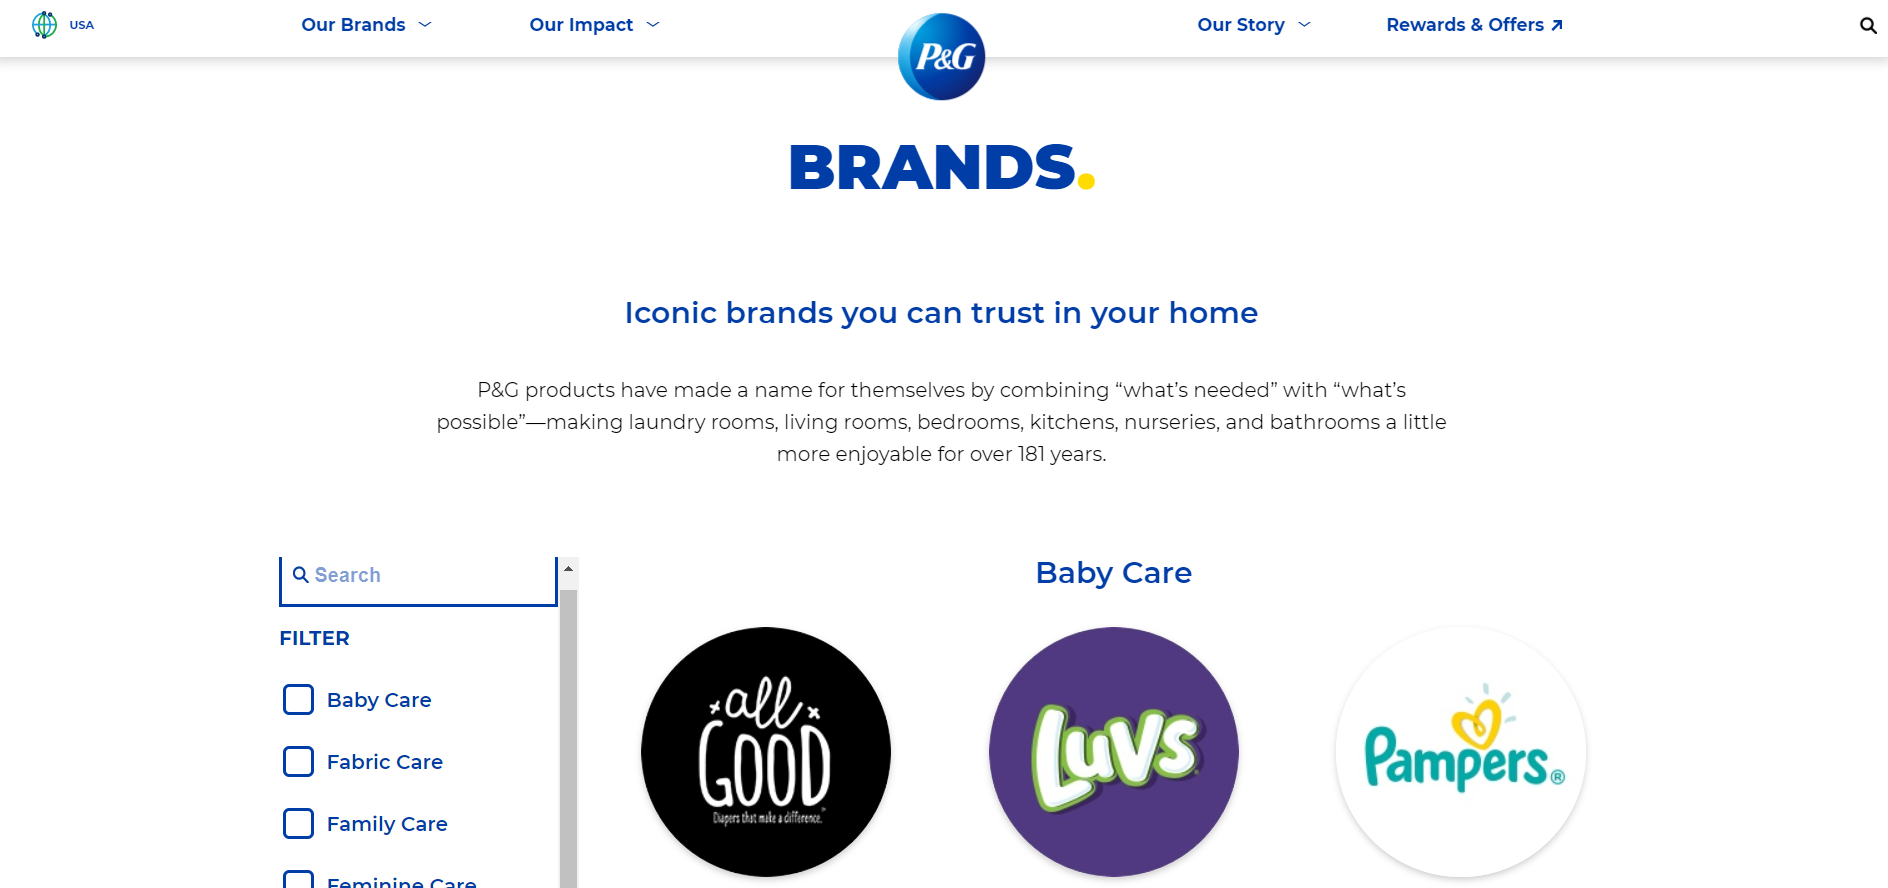 Product lifecycle - Procter & Gamble example